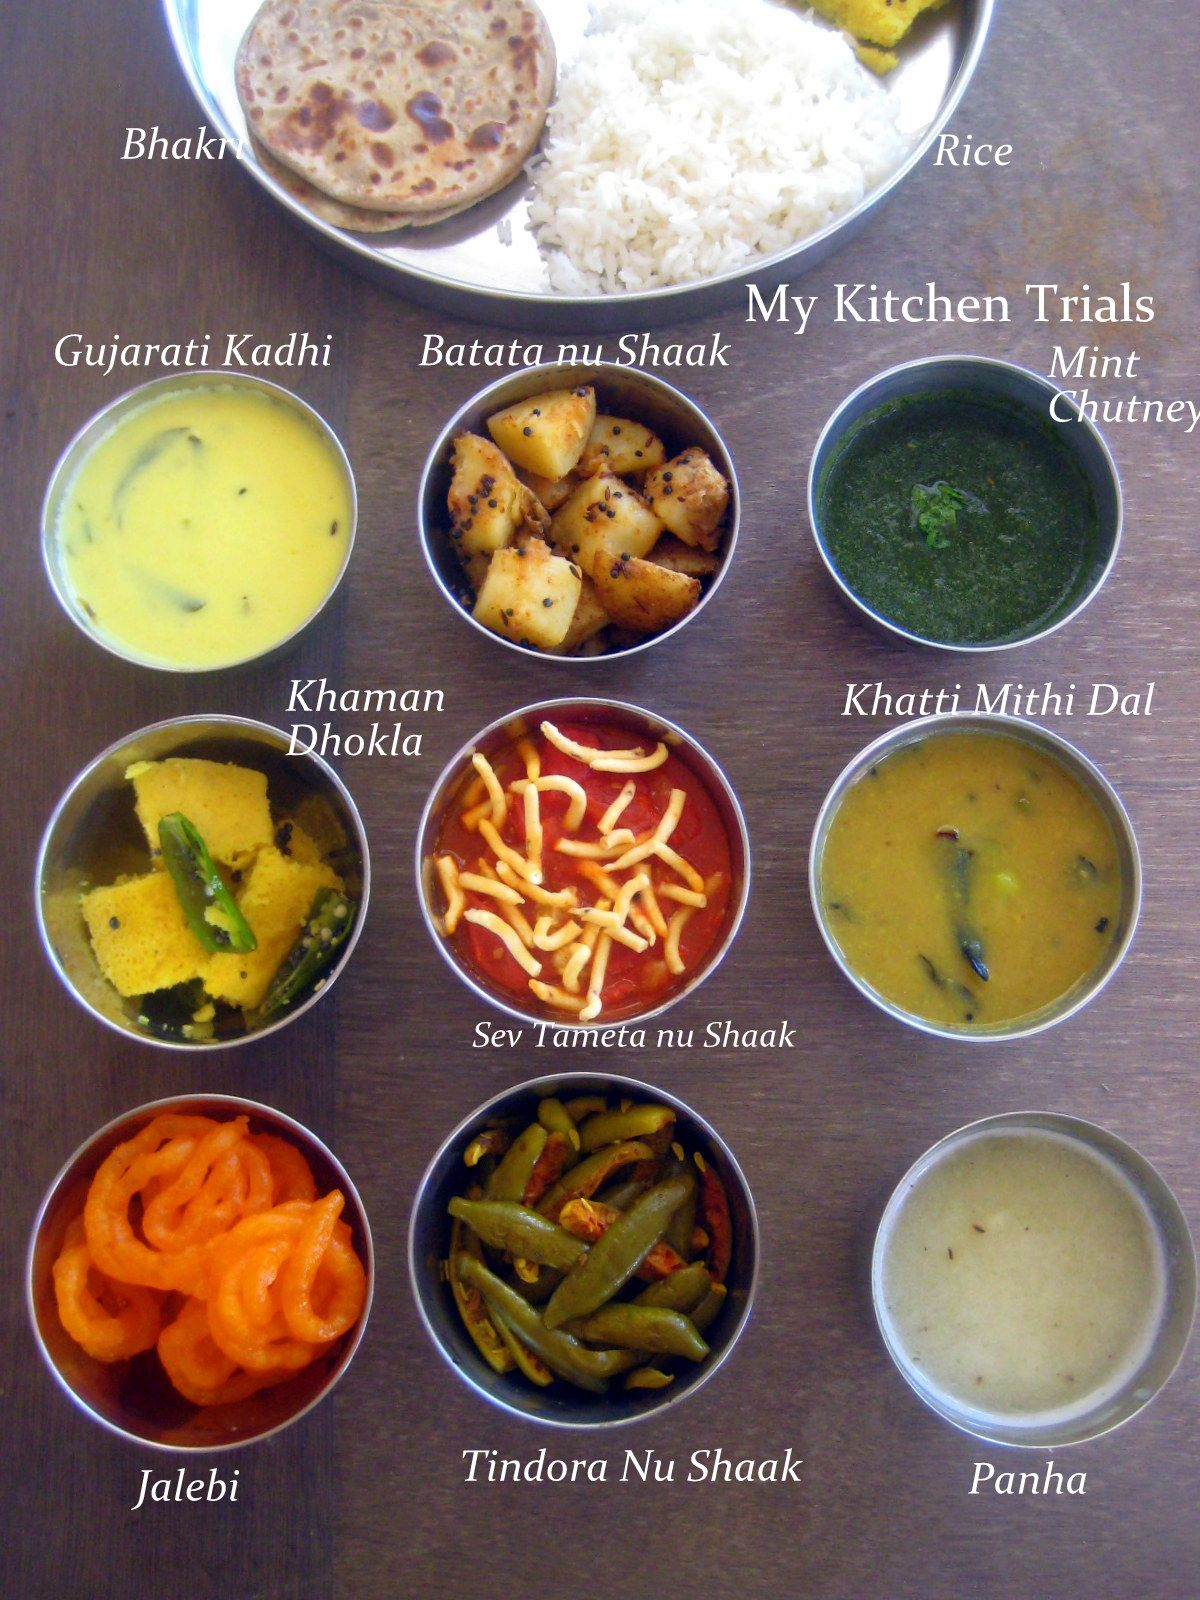 Gujarati thali desi dal vegetarian recipes pinterest gujarati thali gujarati thali recipes forumfinder Image collections